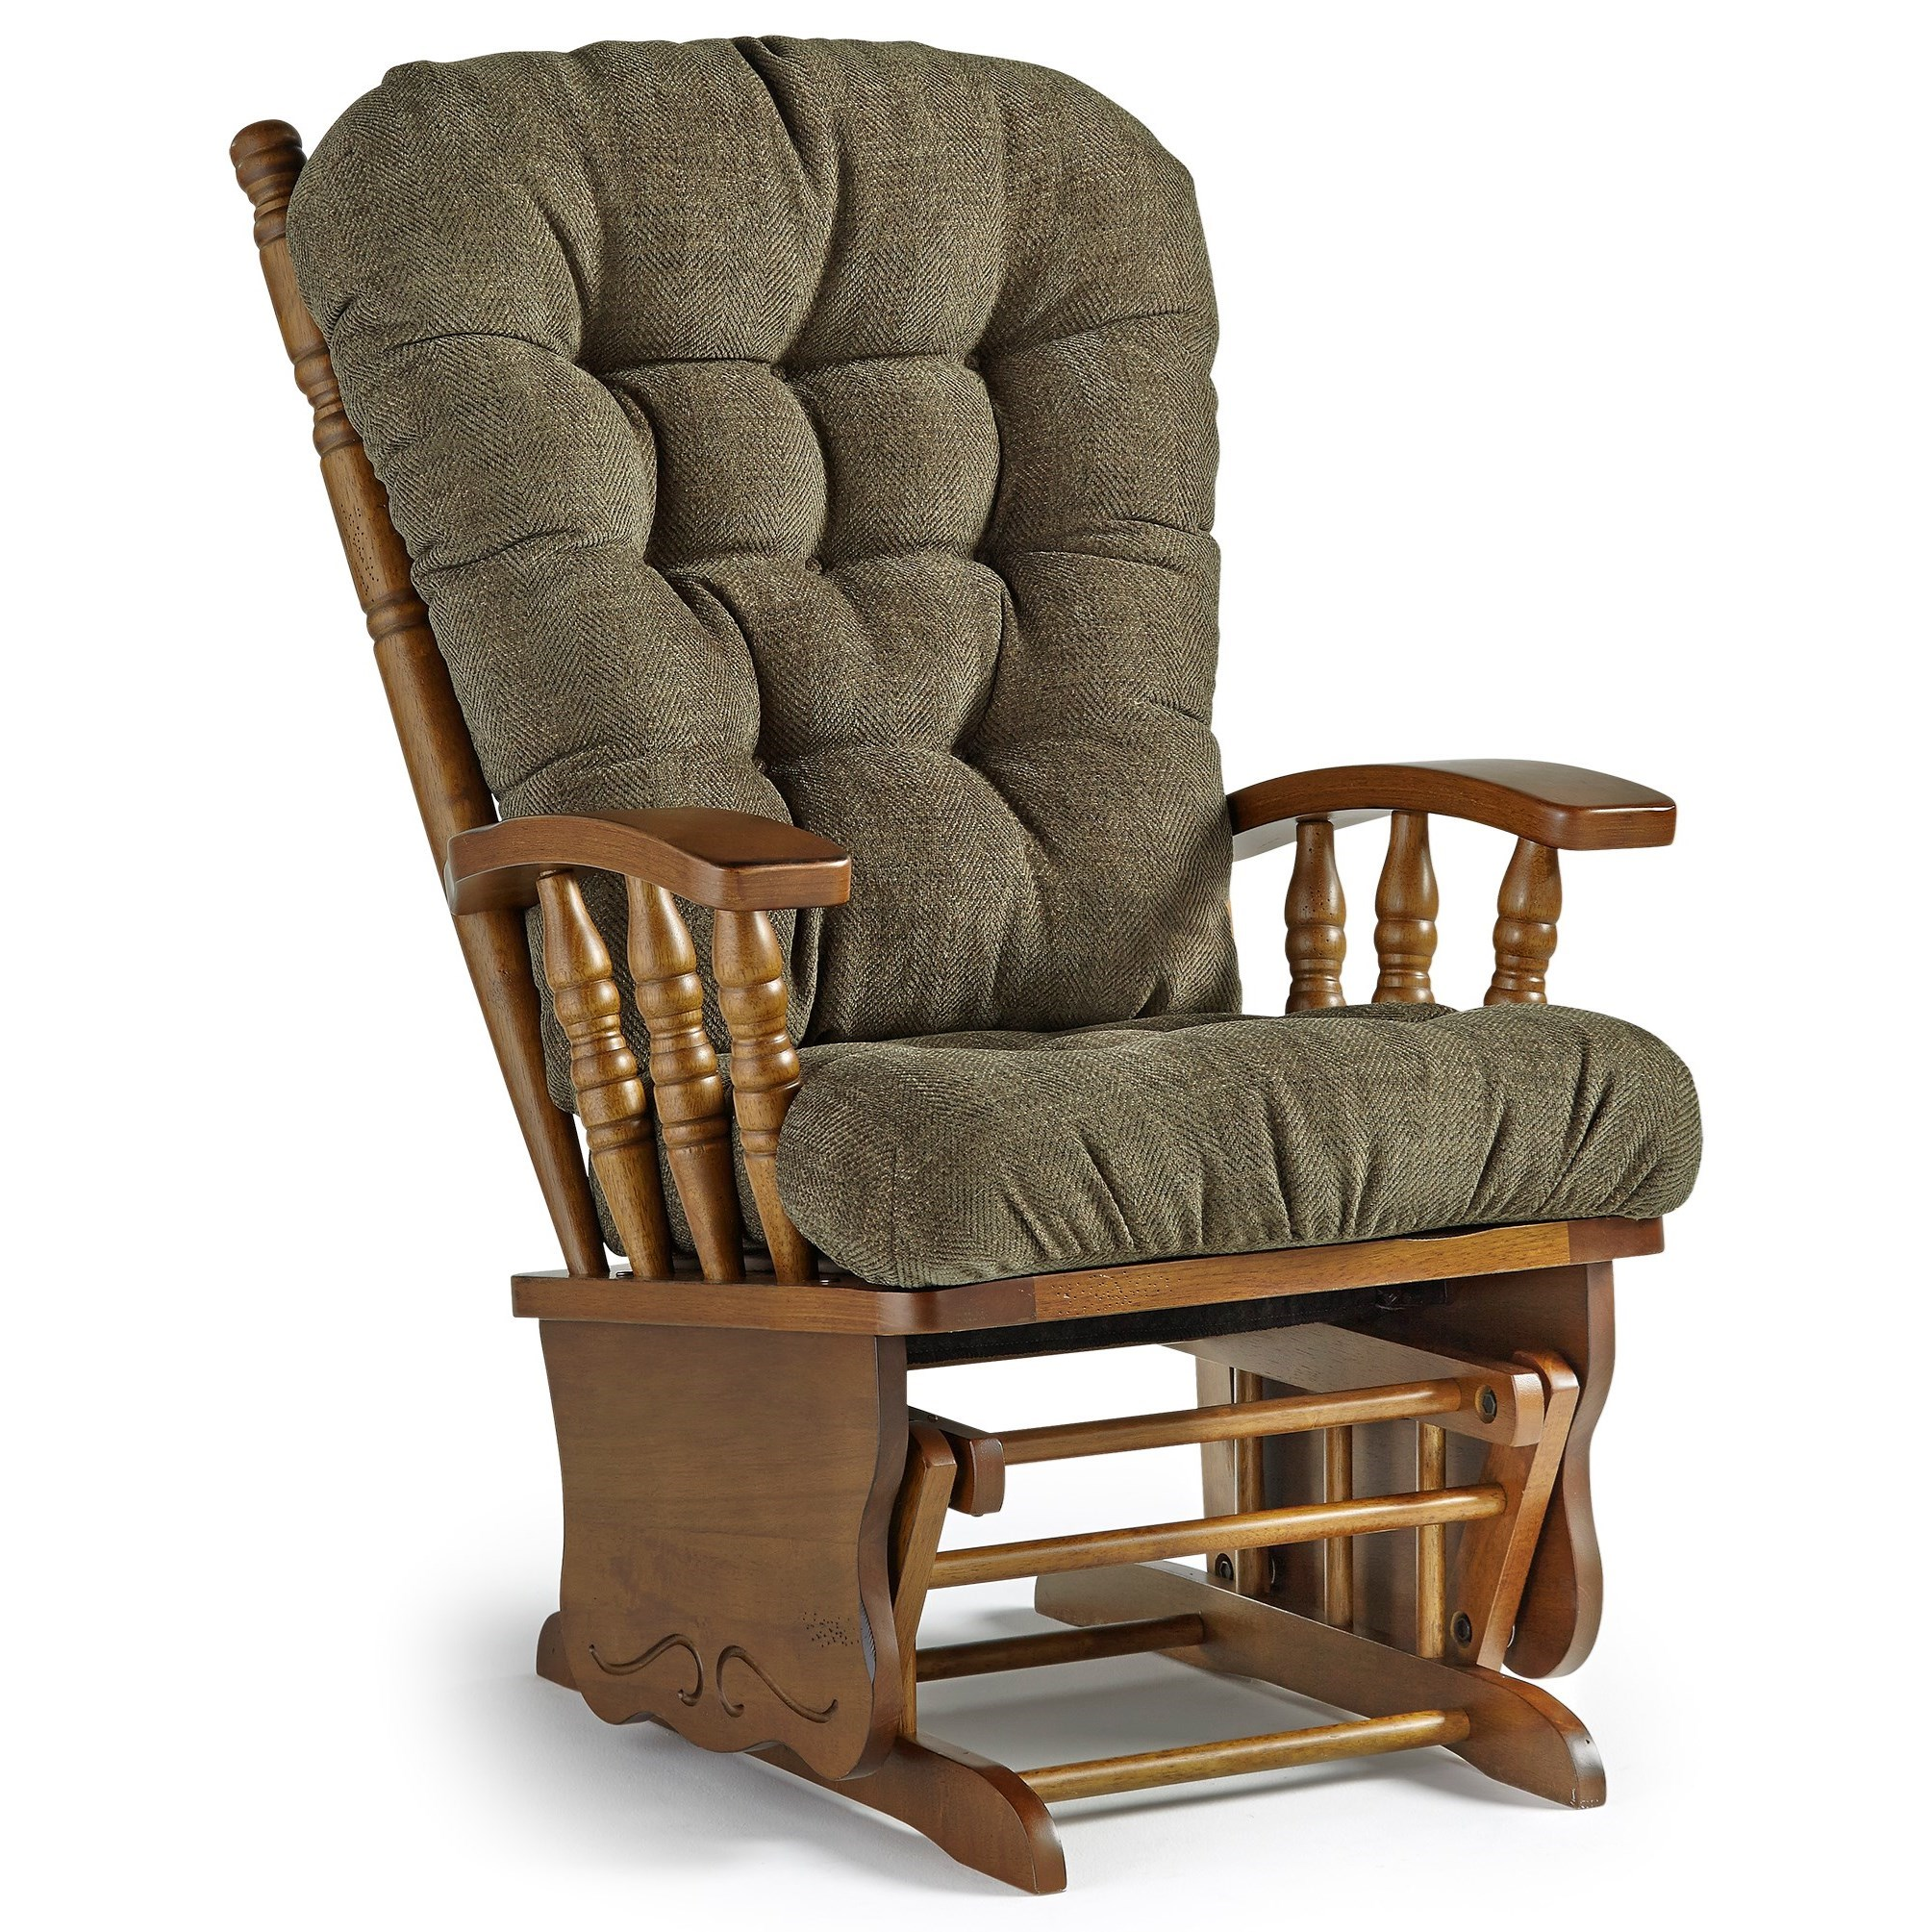 Glider Rockers Henley Glider Rocker by Best Home Furnishings at Powell's Furniture and Mattress